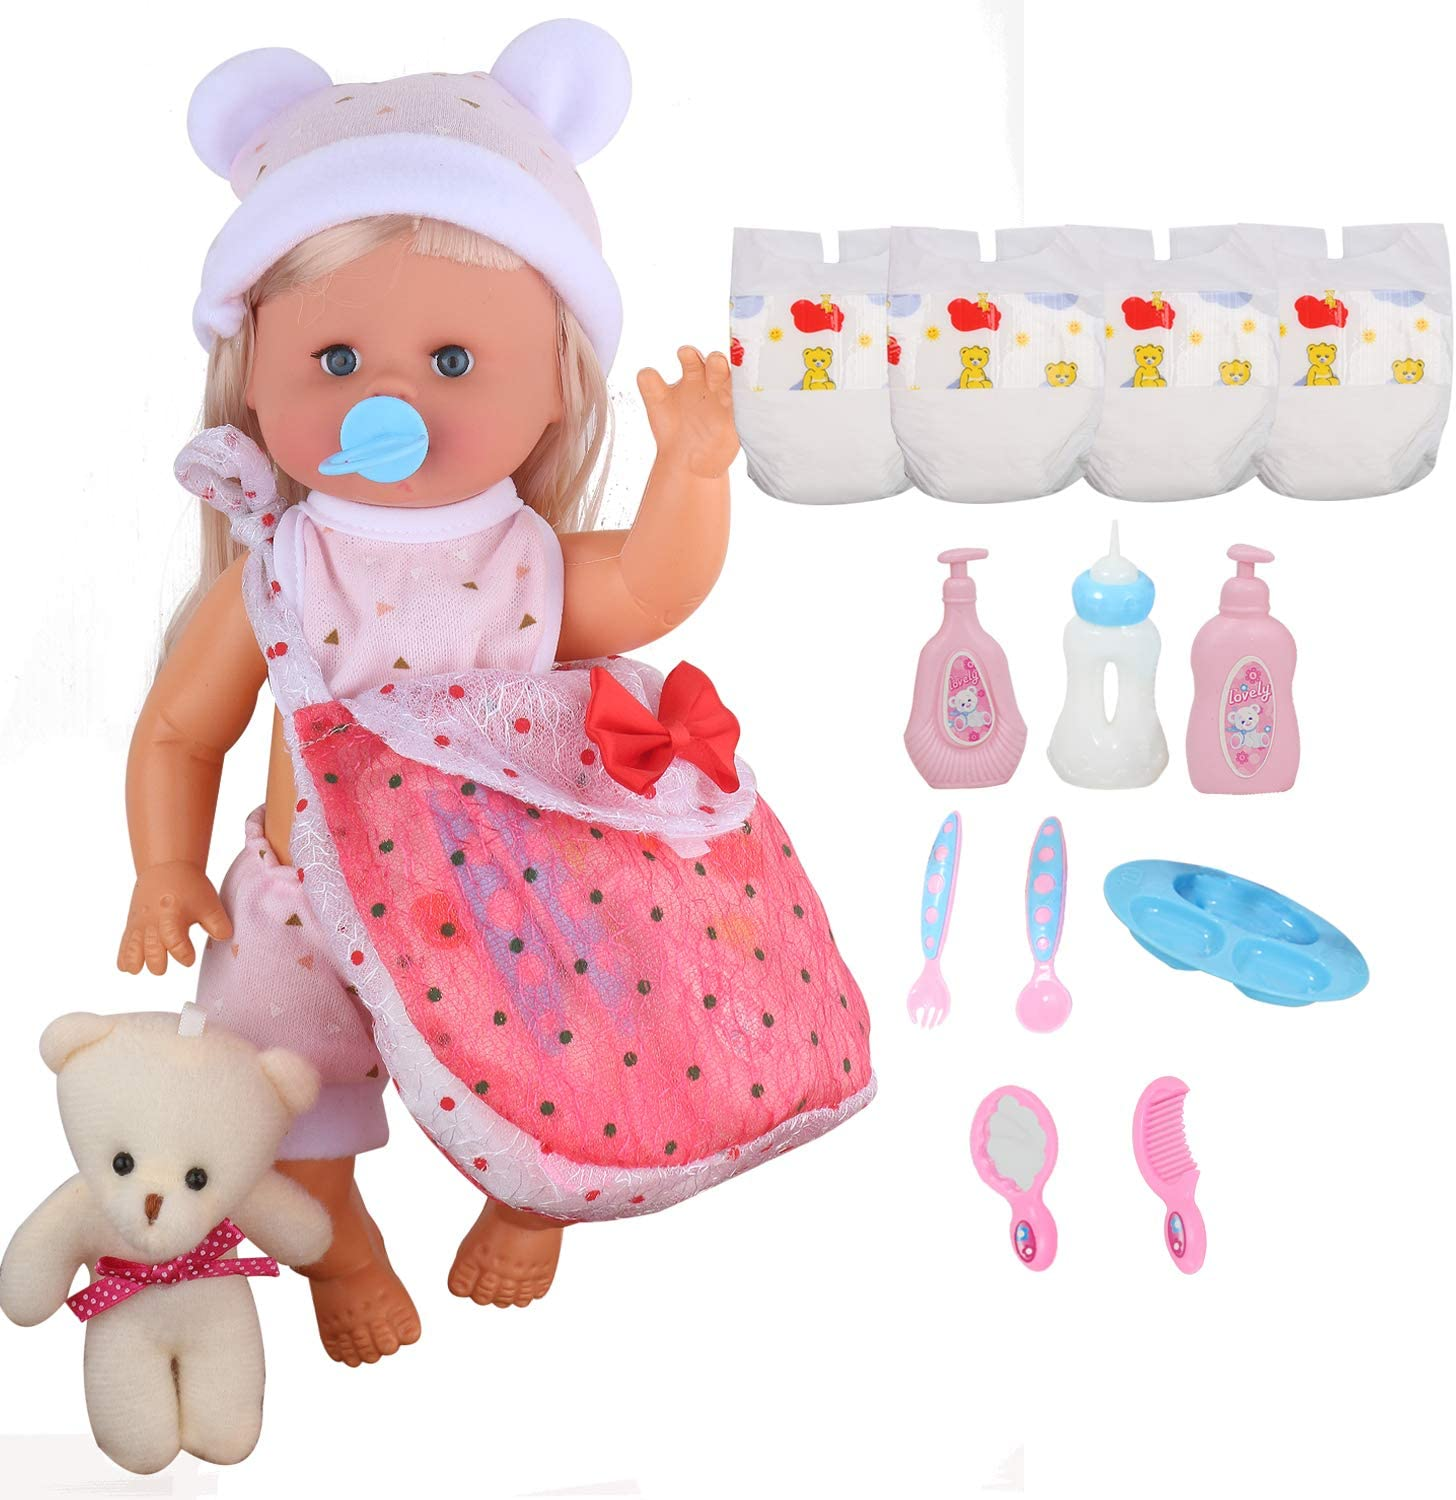 19PCS Baby Doll Accessories for 7-8-9-10-11-12-13 Inch Baby Doll Clothes Reborn Newborn Costumes with 6 Diapers Bibs Feeding Set Bath Set Pretend Platset